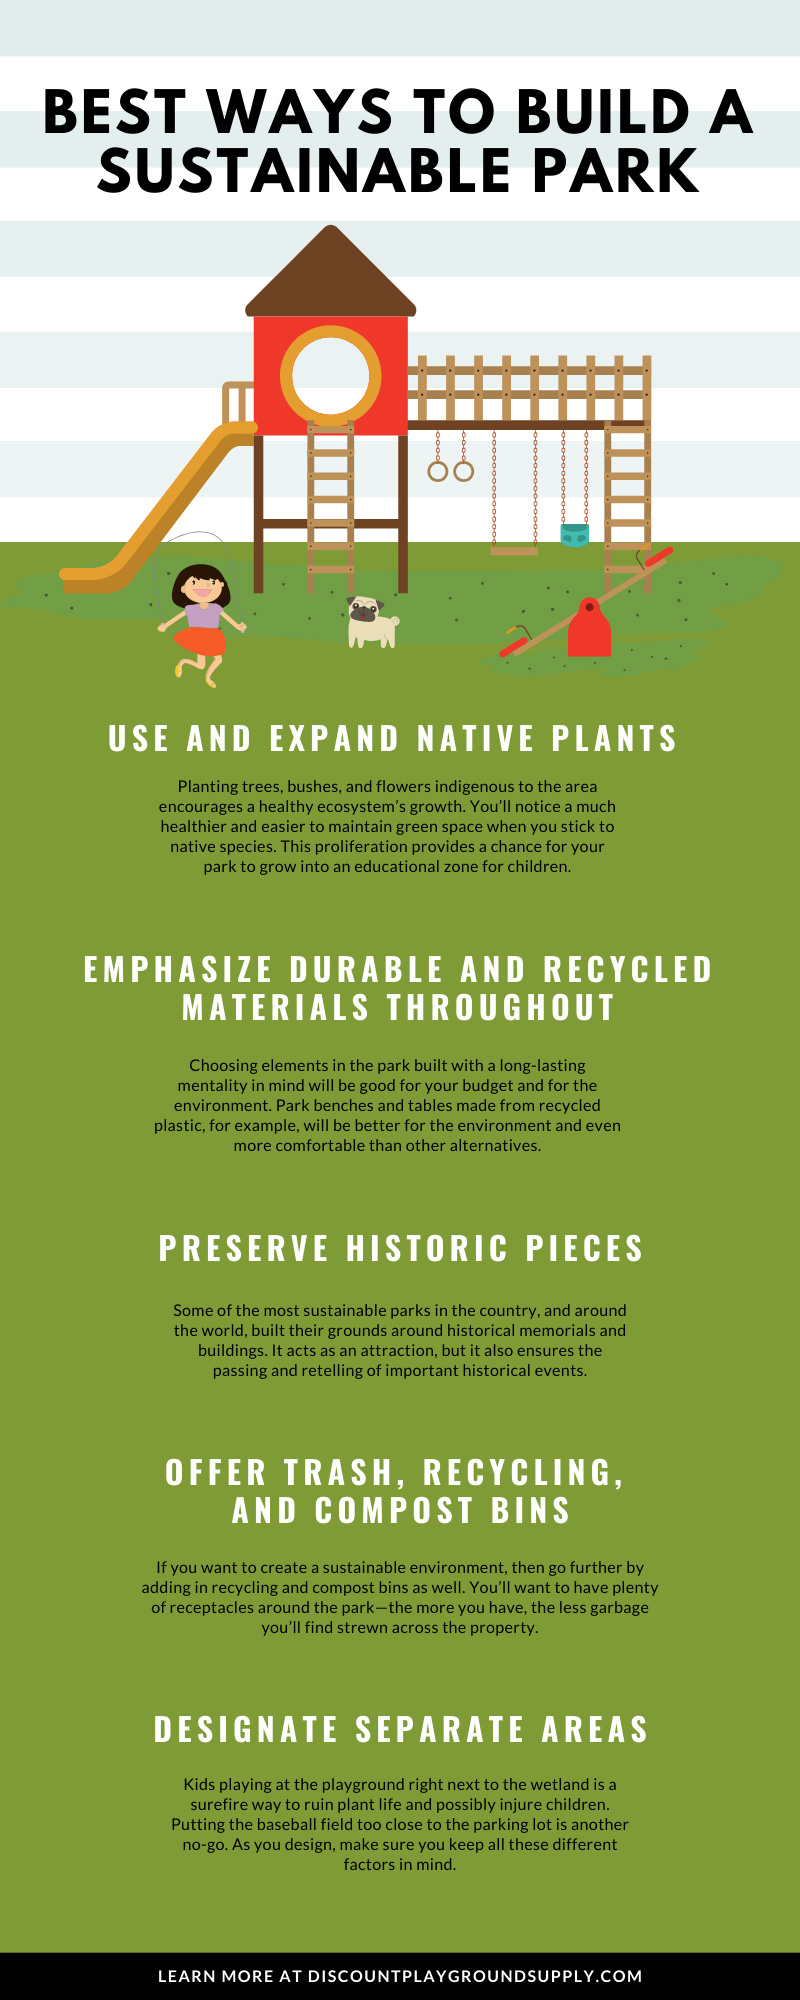 Best Ways to Build a Sustainable Park infographic